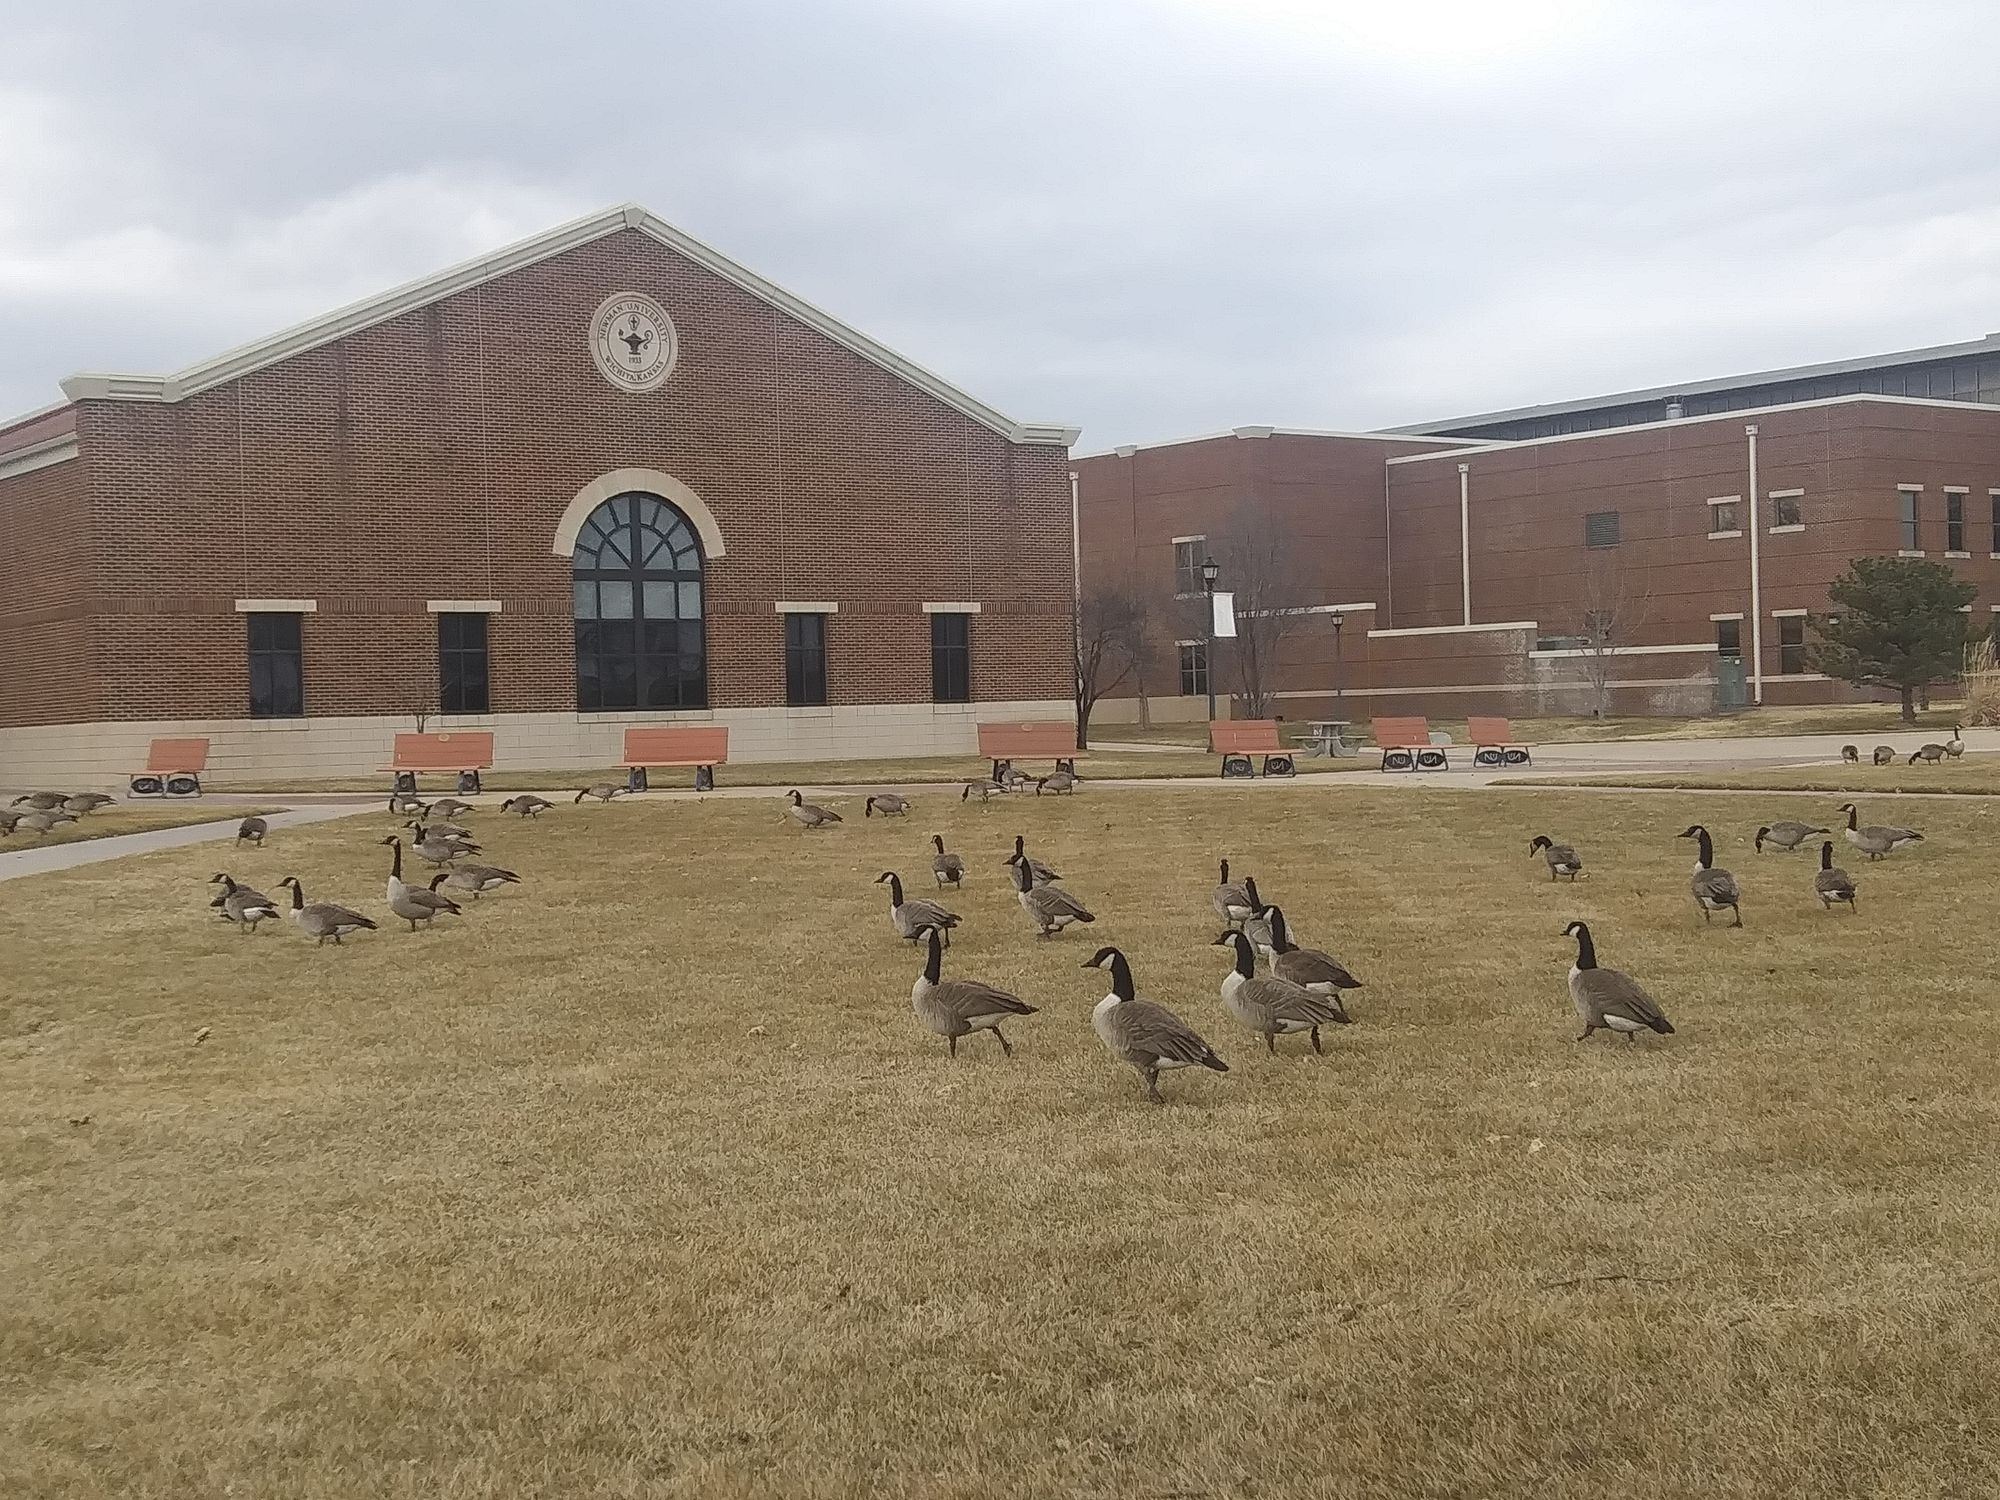 Geese's presence wanted despite unwanted presents